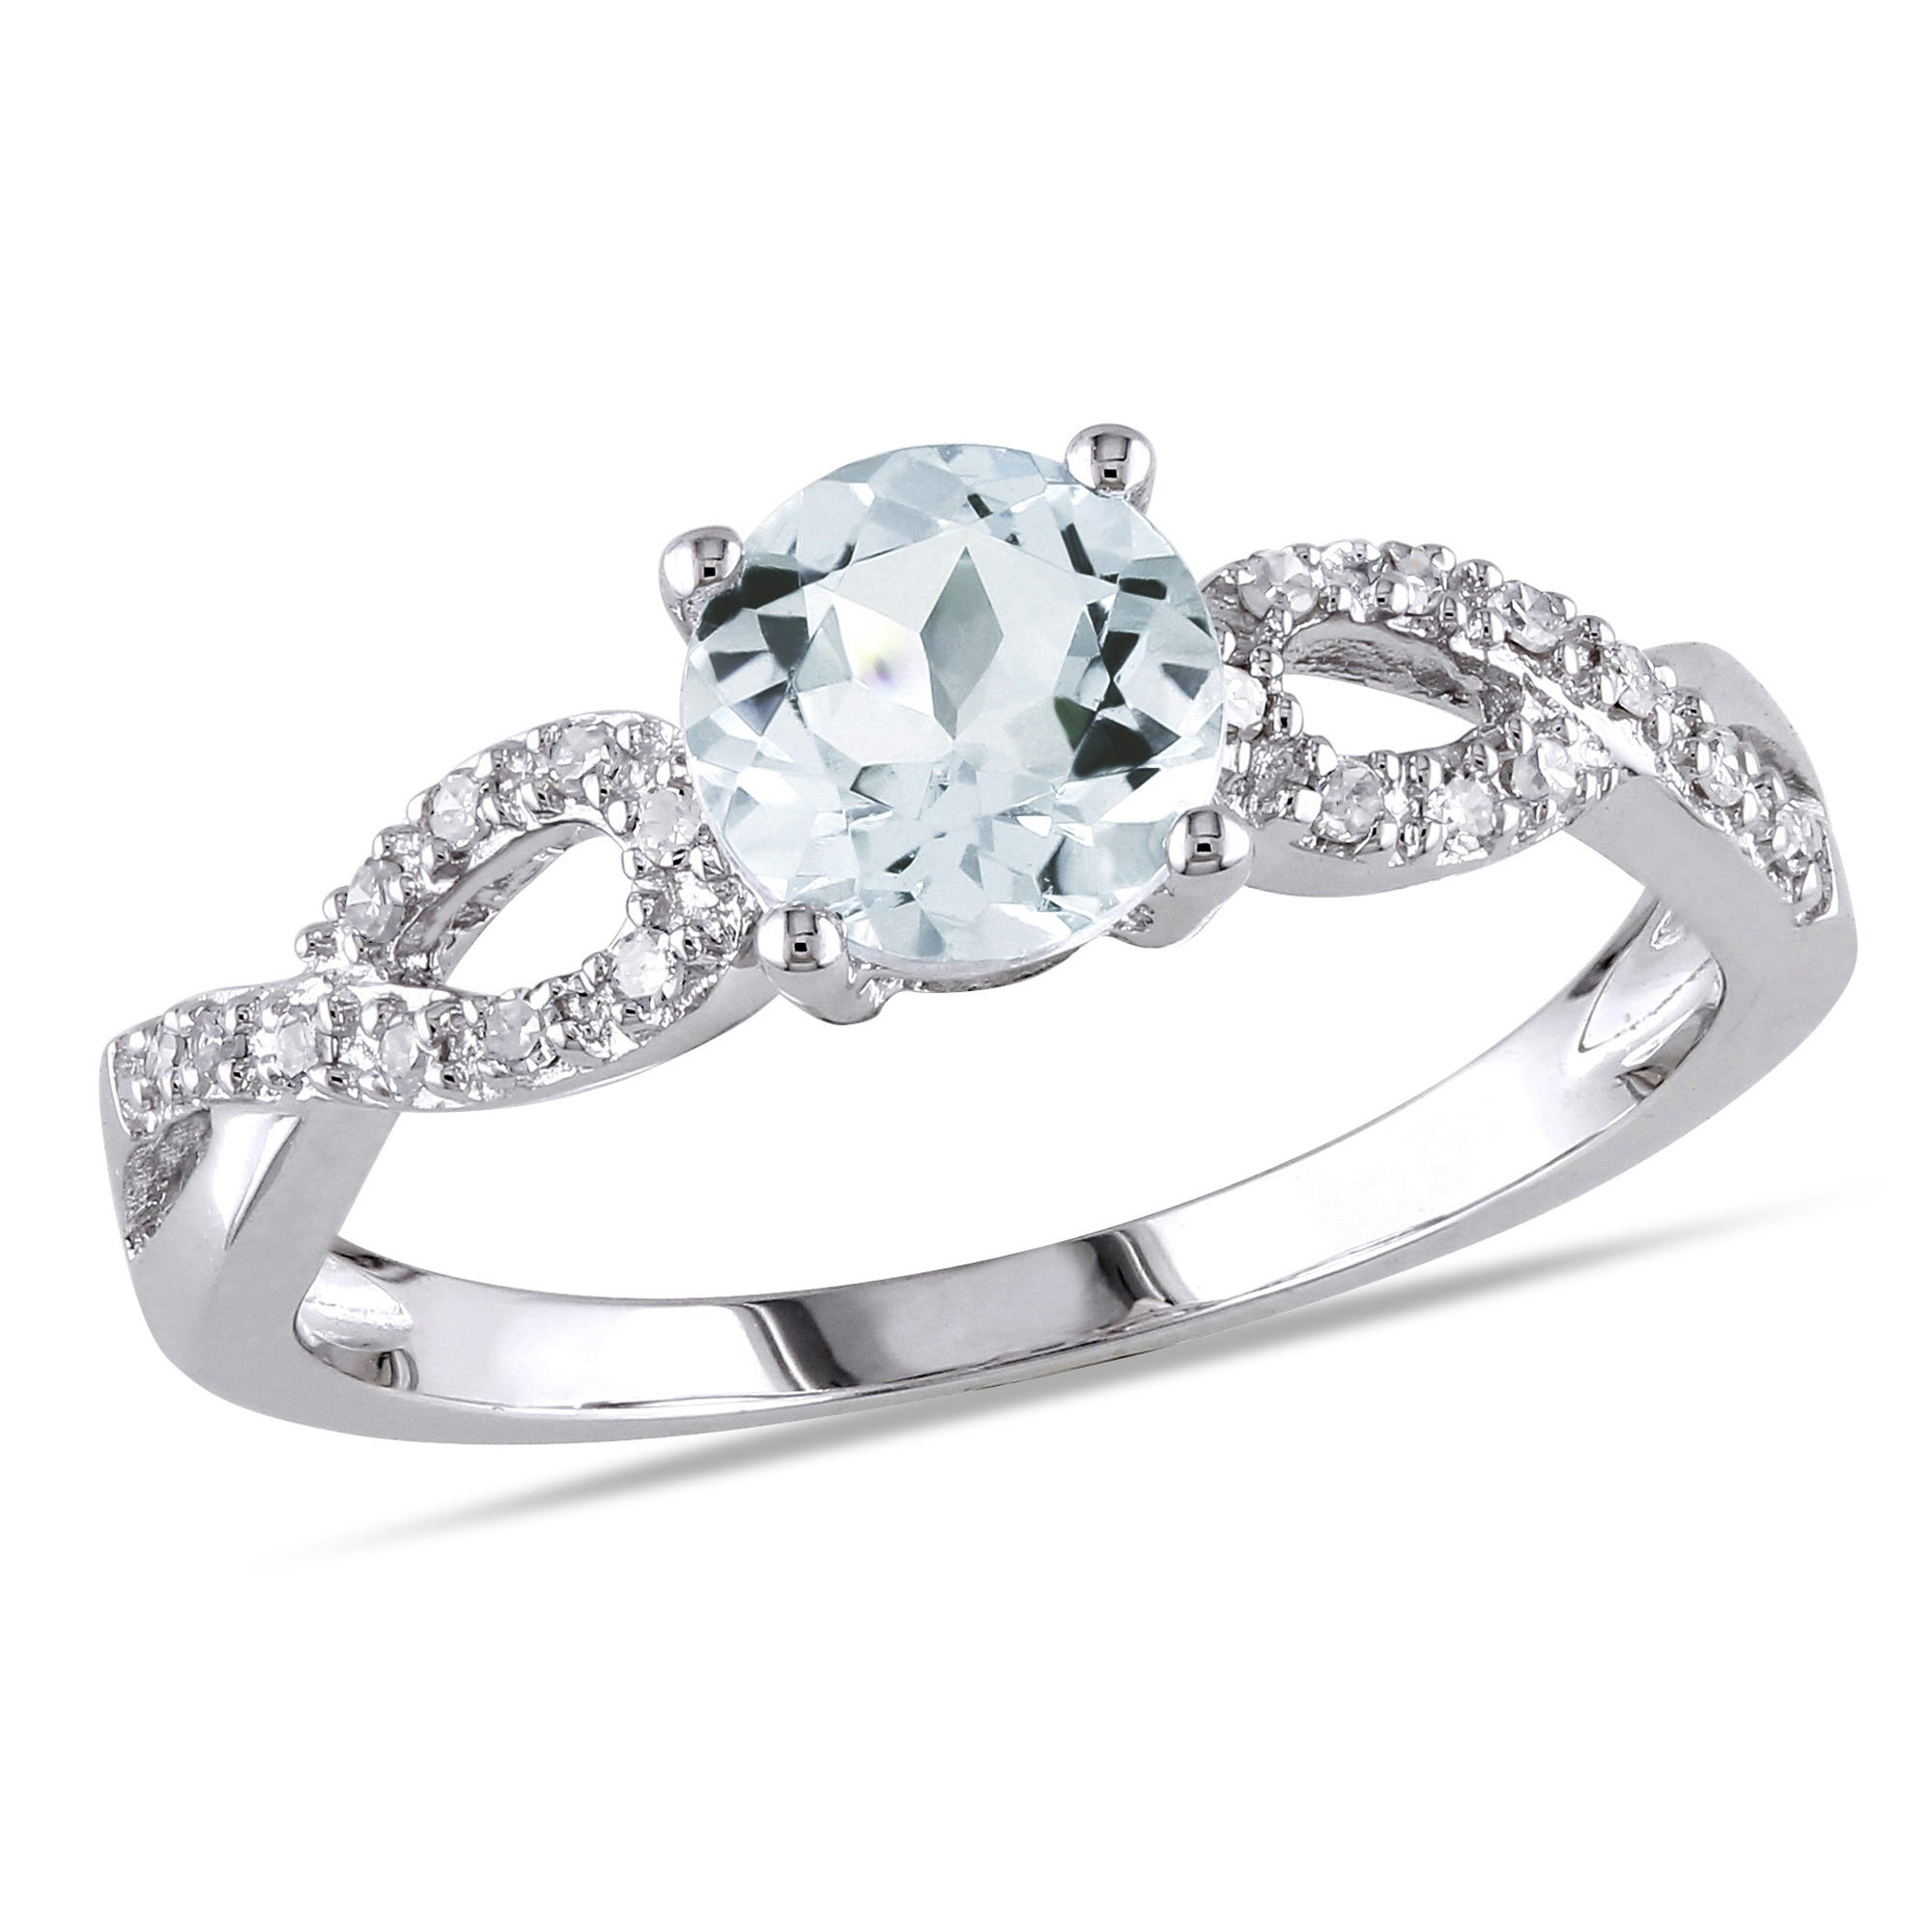 Round Aquamarine & Diamond Loop Shank Engagement Ring in 10k White Gold